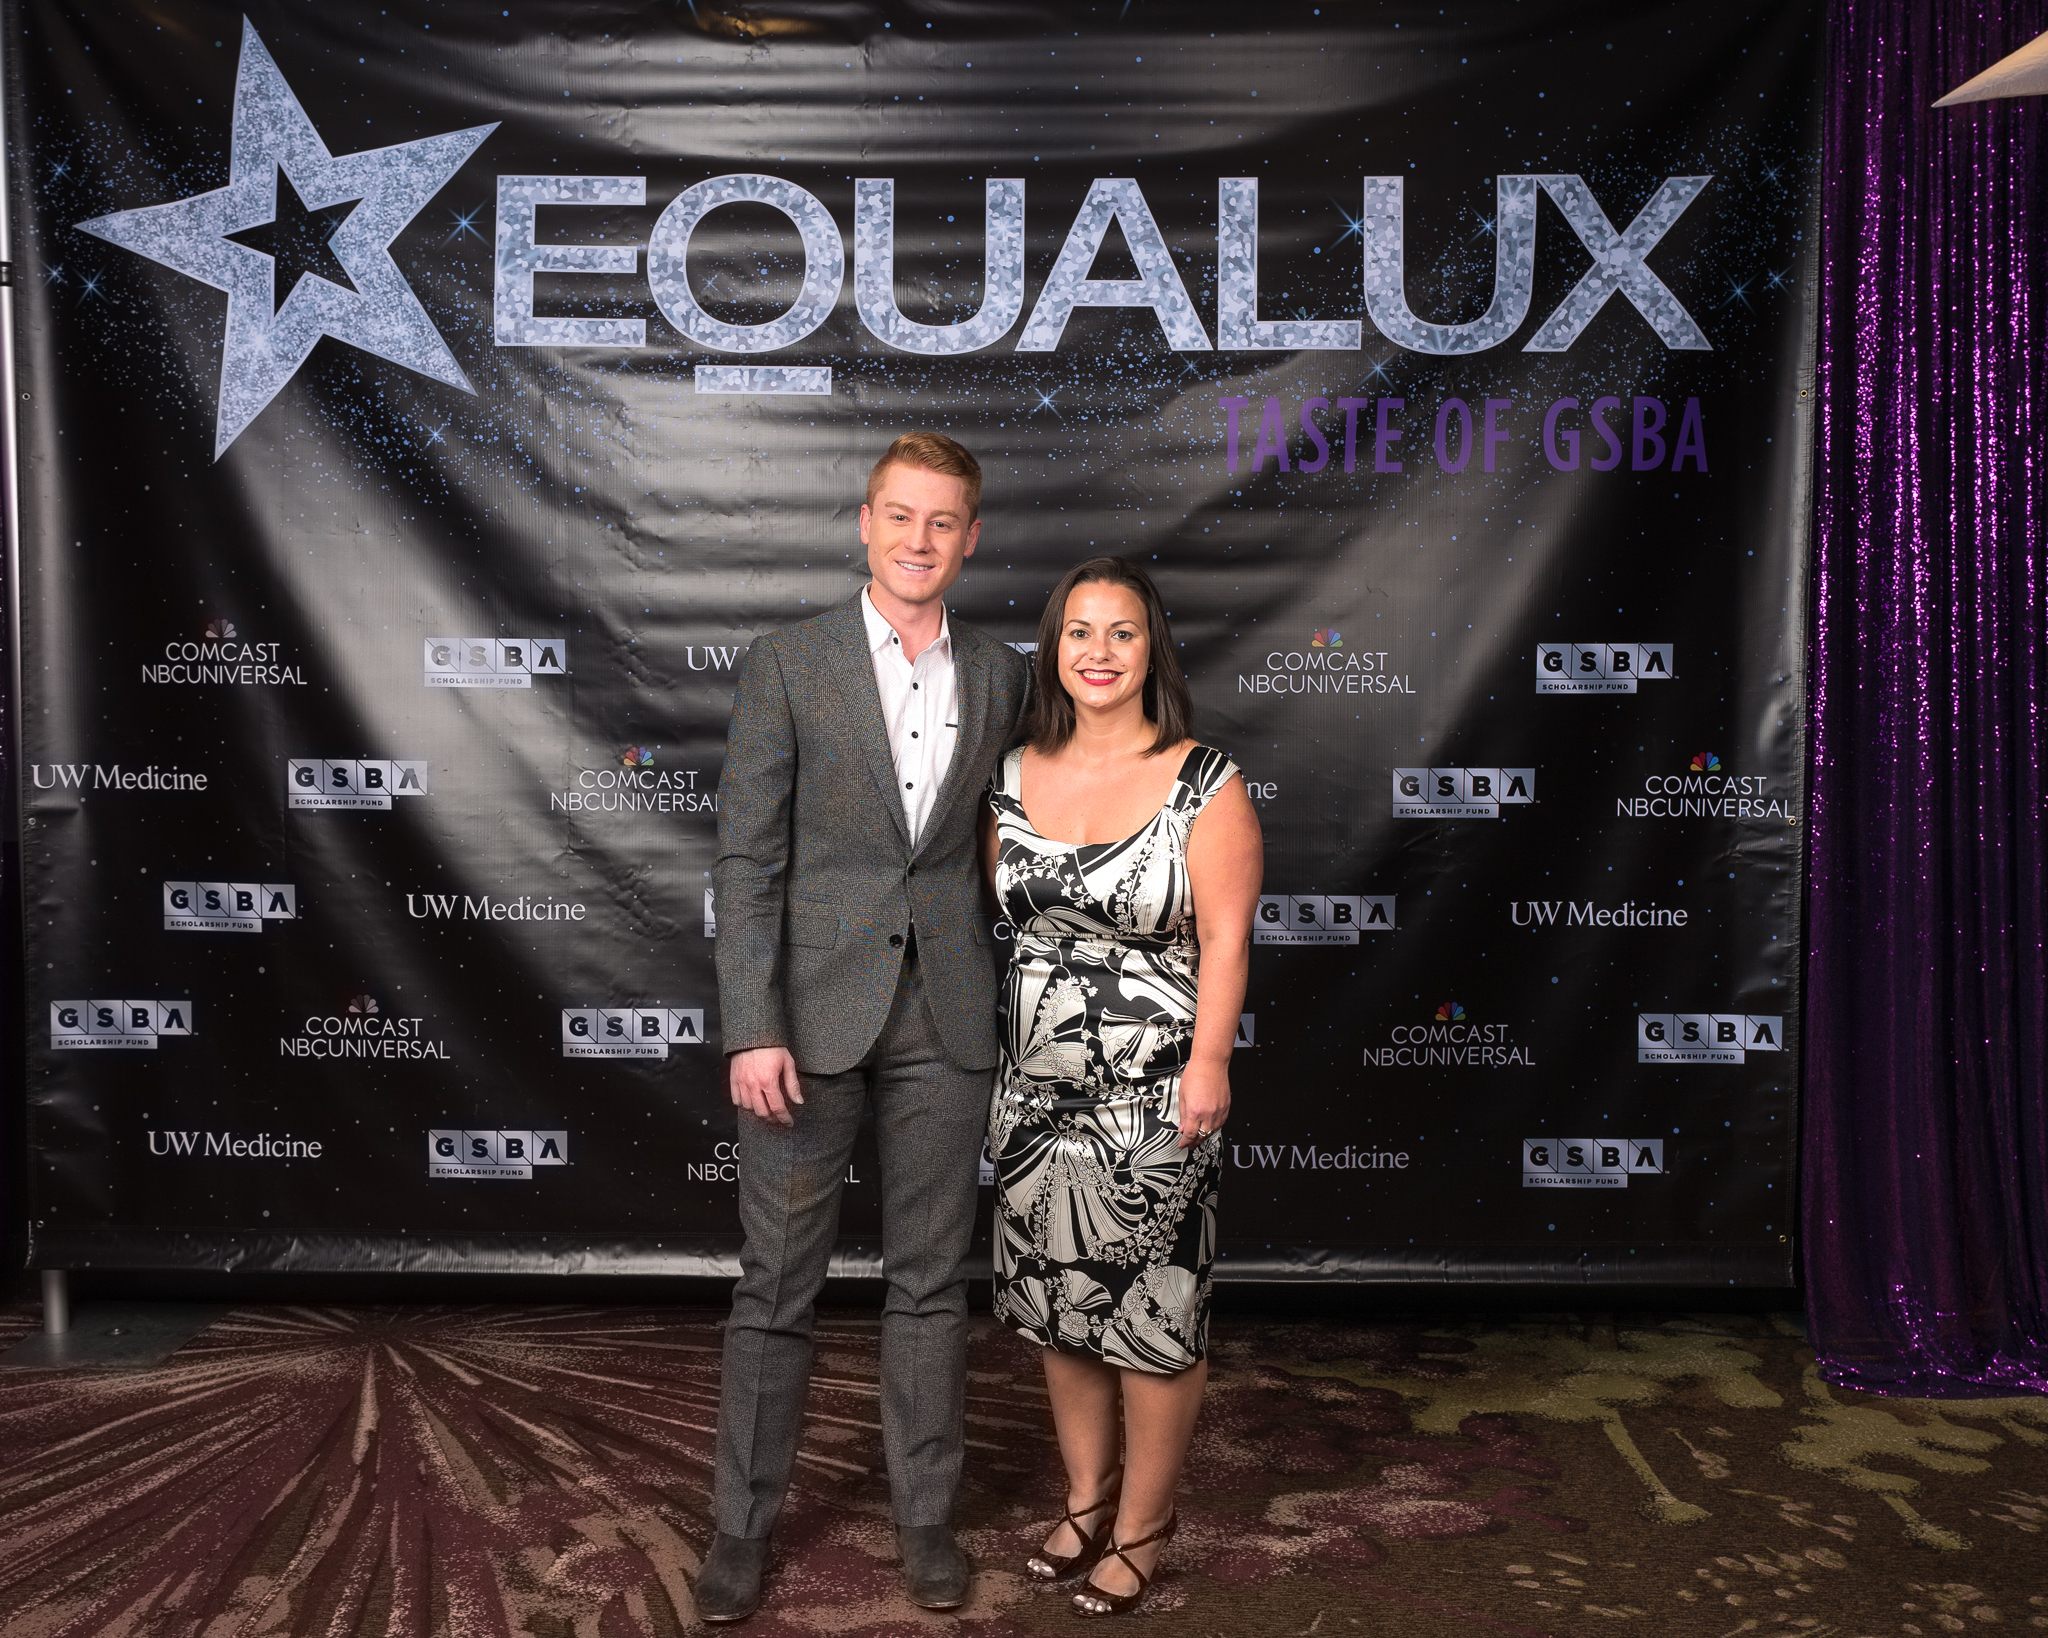 111718_GSBA EQUALUX at The Westin Seattle (Credit- Nate Gowdy)-111.jpg